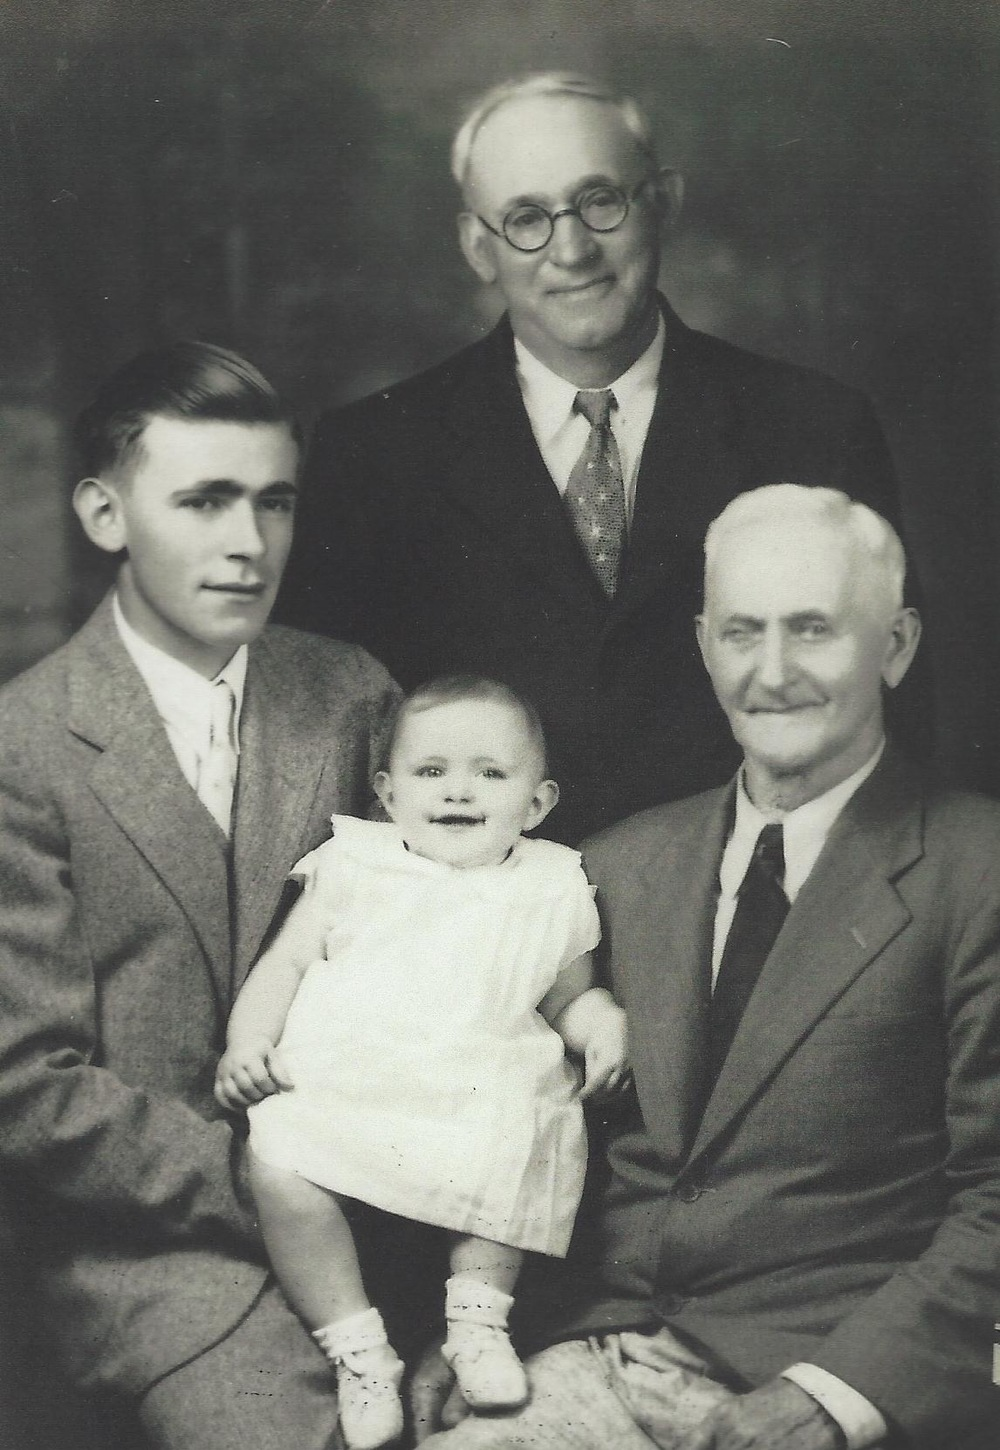 tom, Cherie, Chester and Erford Brown in 1935 or 1936